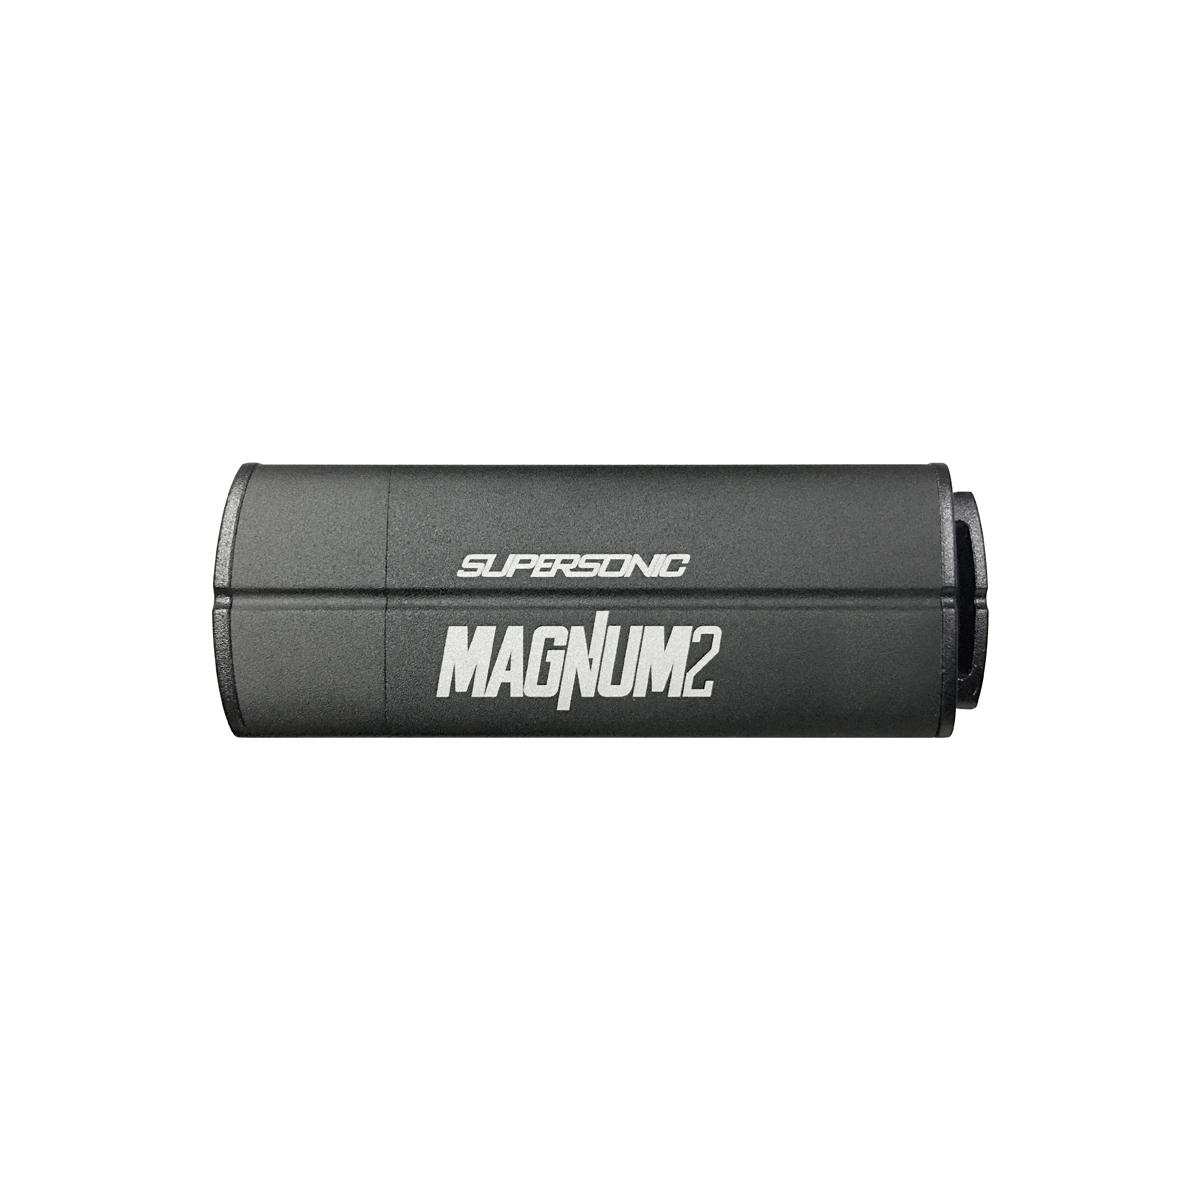 Flash Drive Patriot Supersonic Magnum 2 USB 3.1 Gen.1 256GB